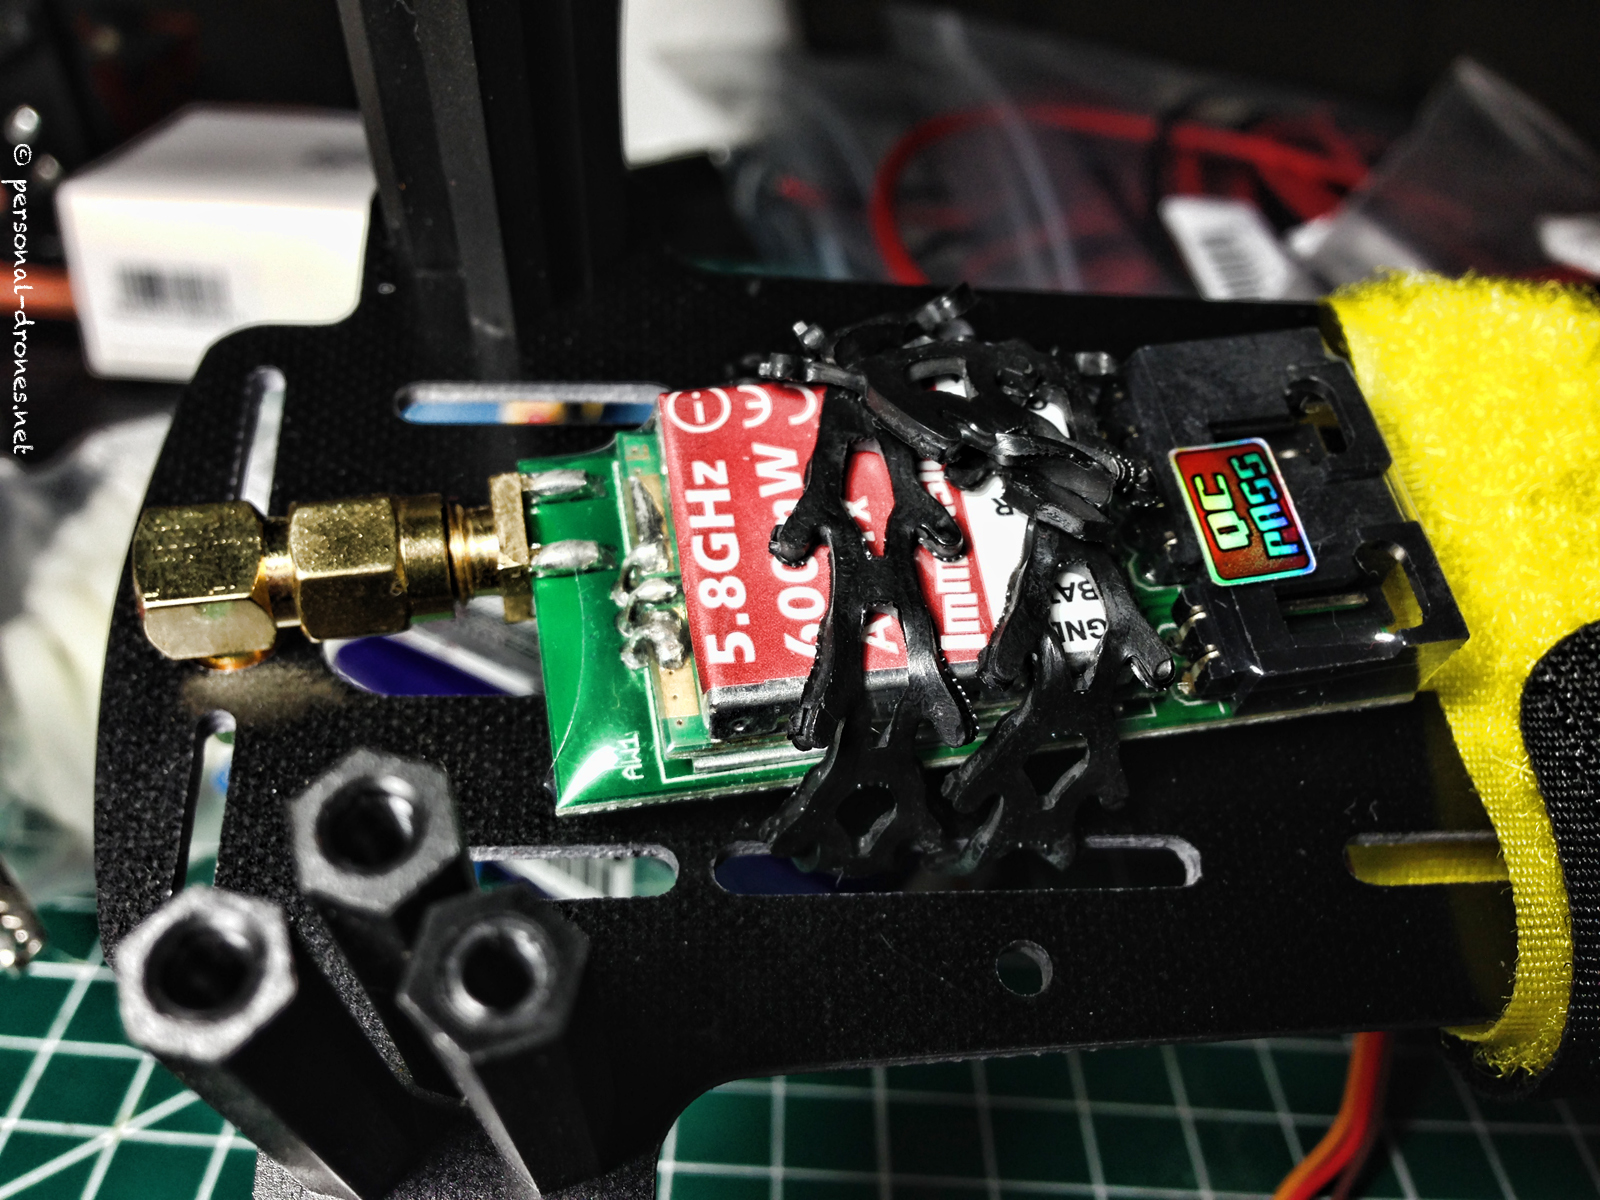 ImmersionRC 600mW video Transmitter on FlyXcopter FlyX-Mini quadcopter